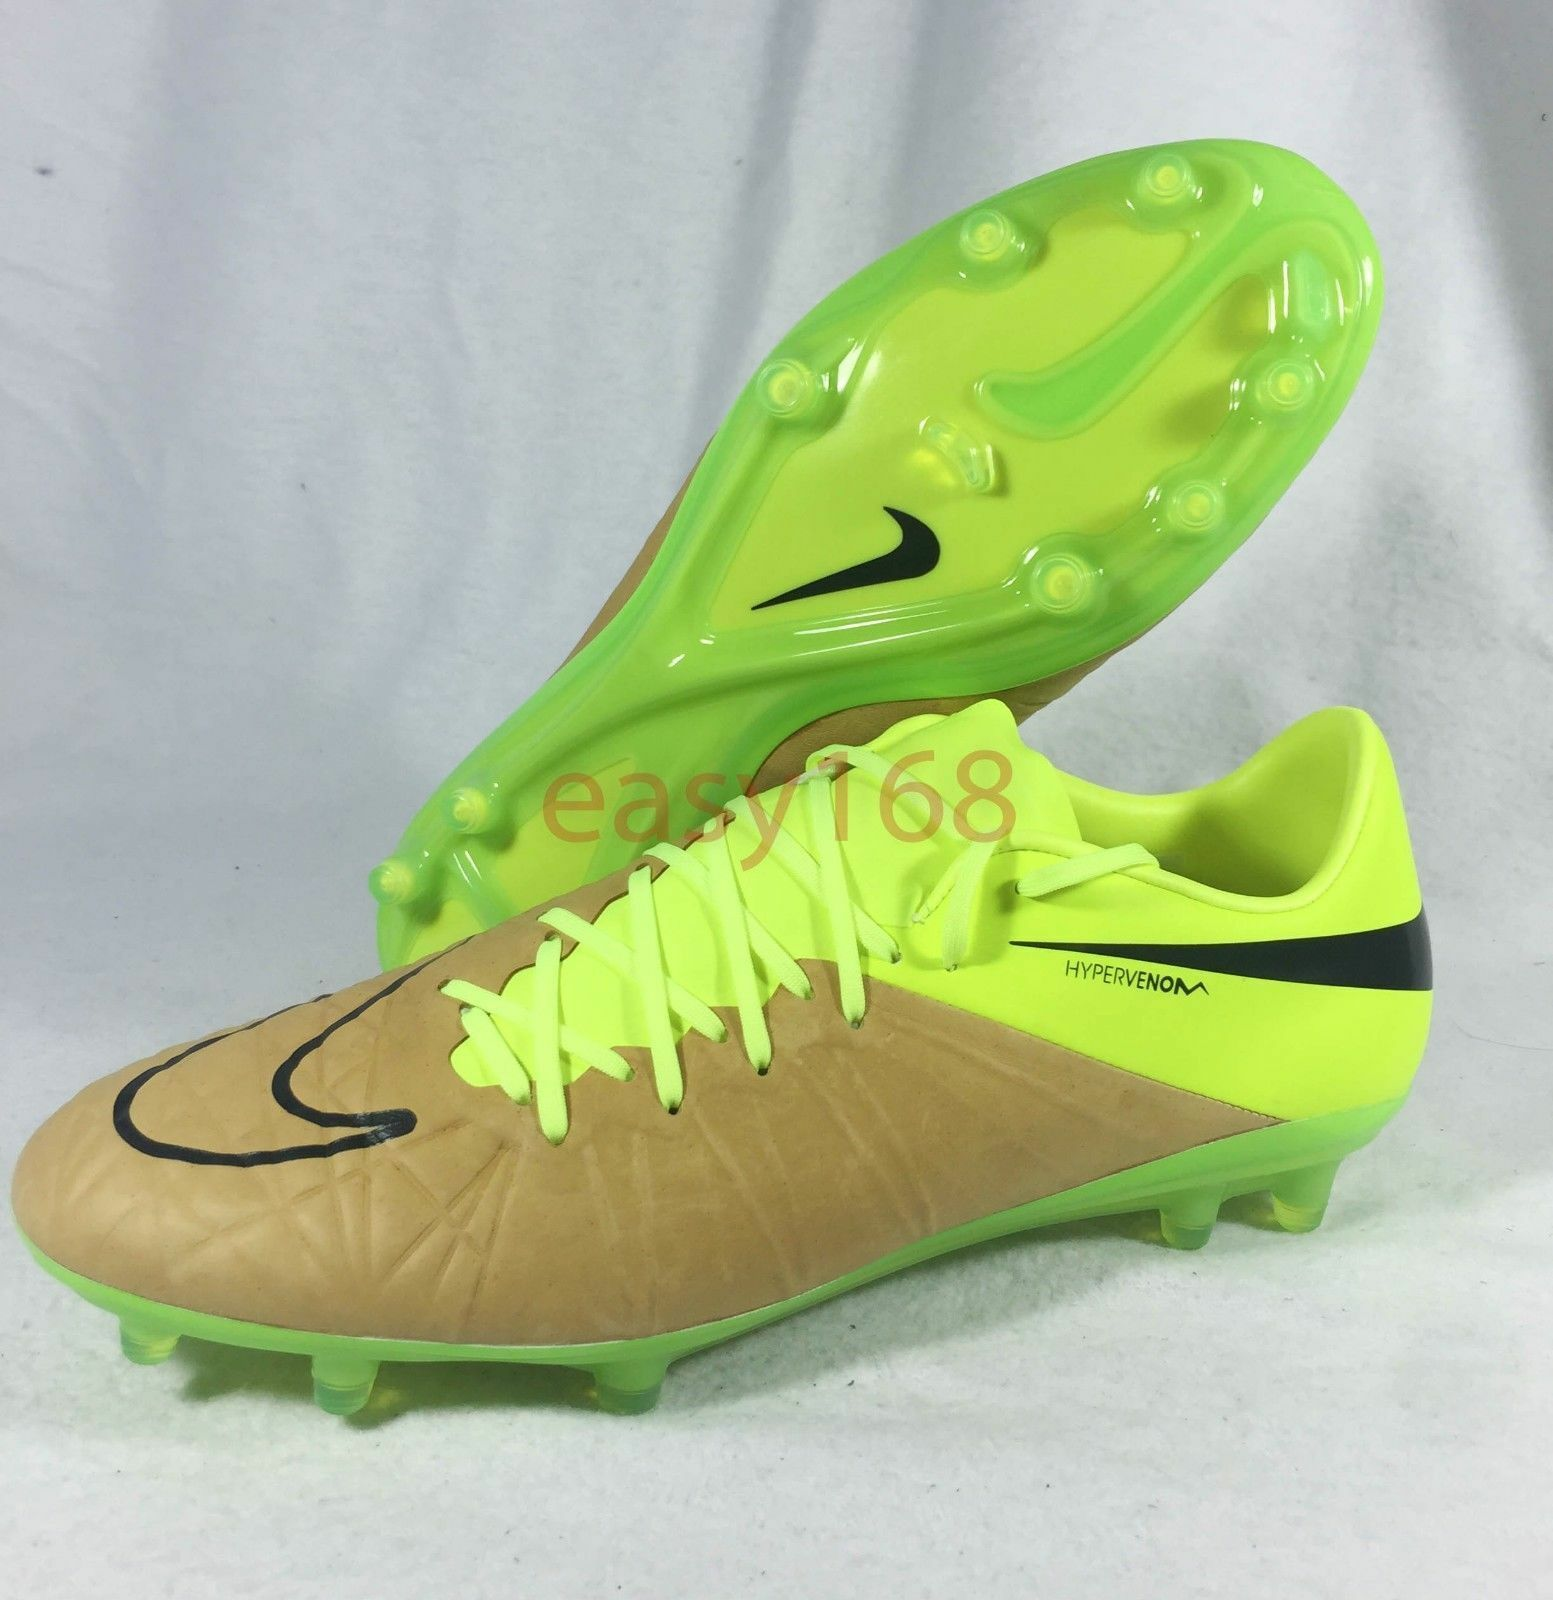 New Nike Hypervenom Phinish II Sz 10 Soccer 44 Cleats Leather 759980 Mens Volt